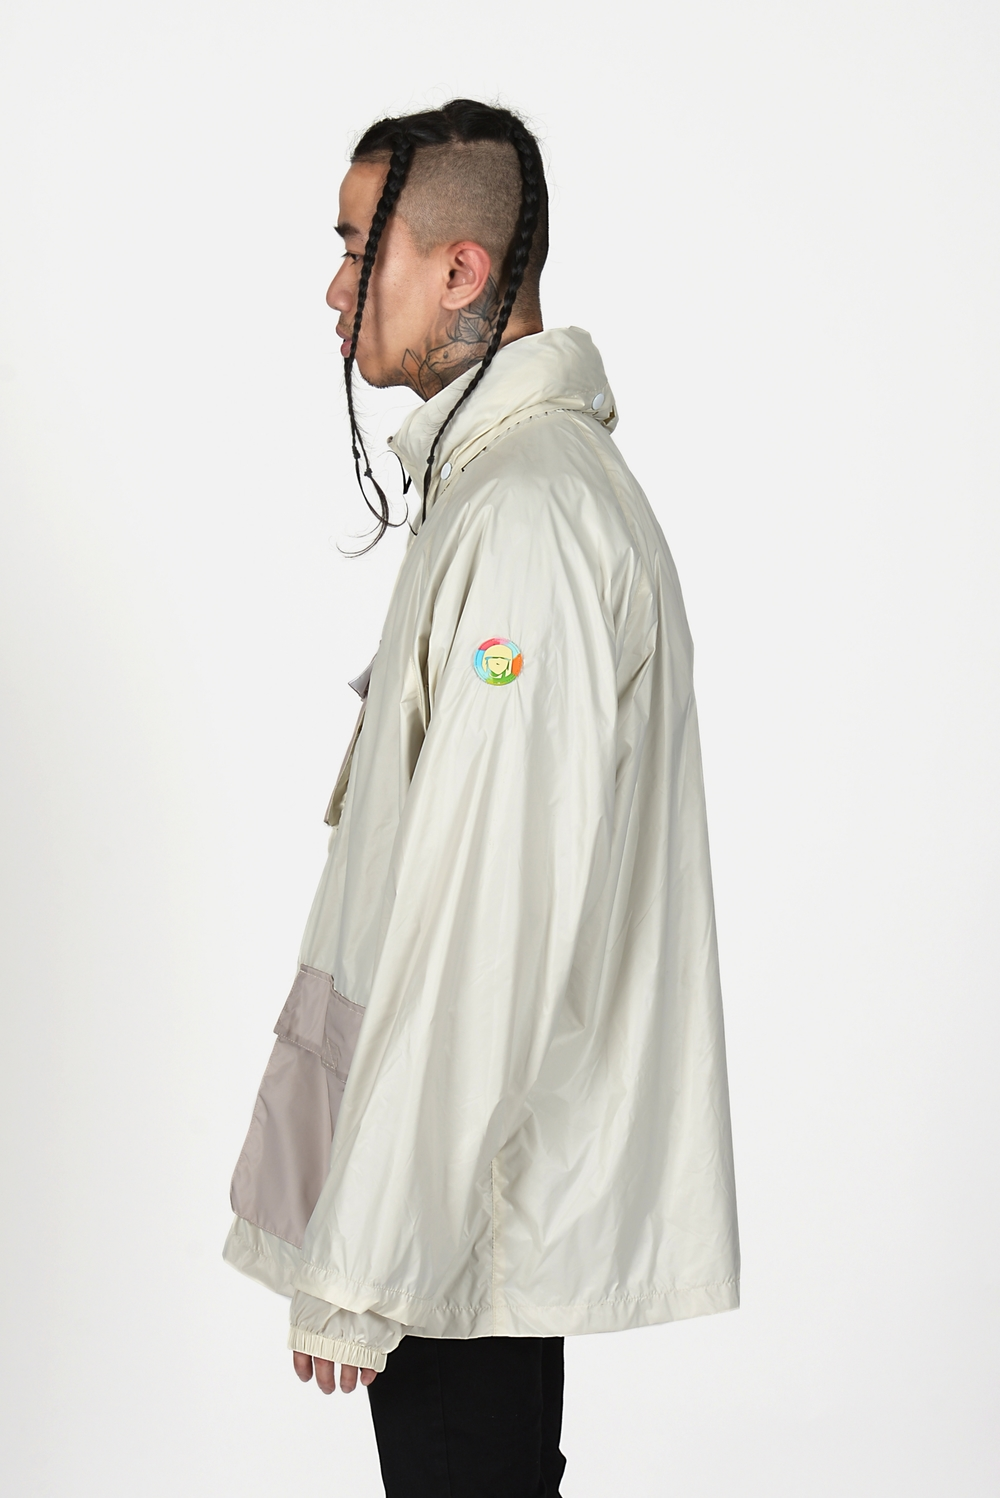 02 Heightened Sense white rain coat.jpg